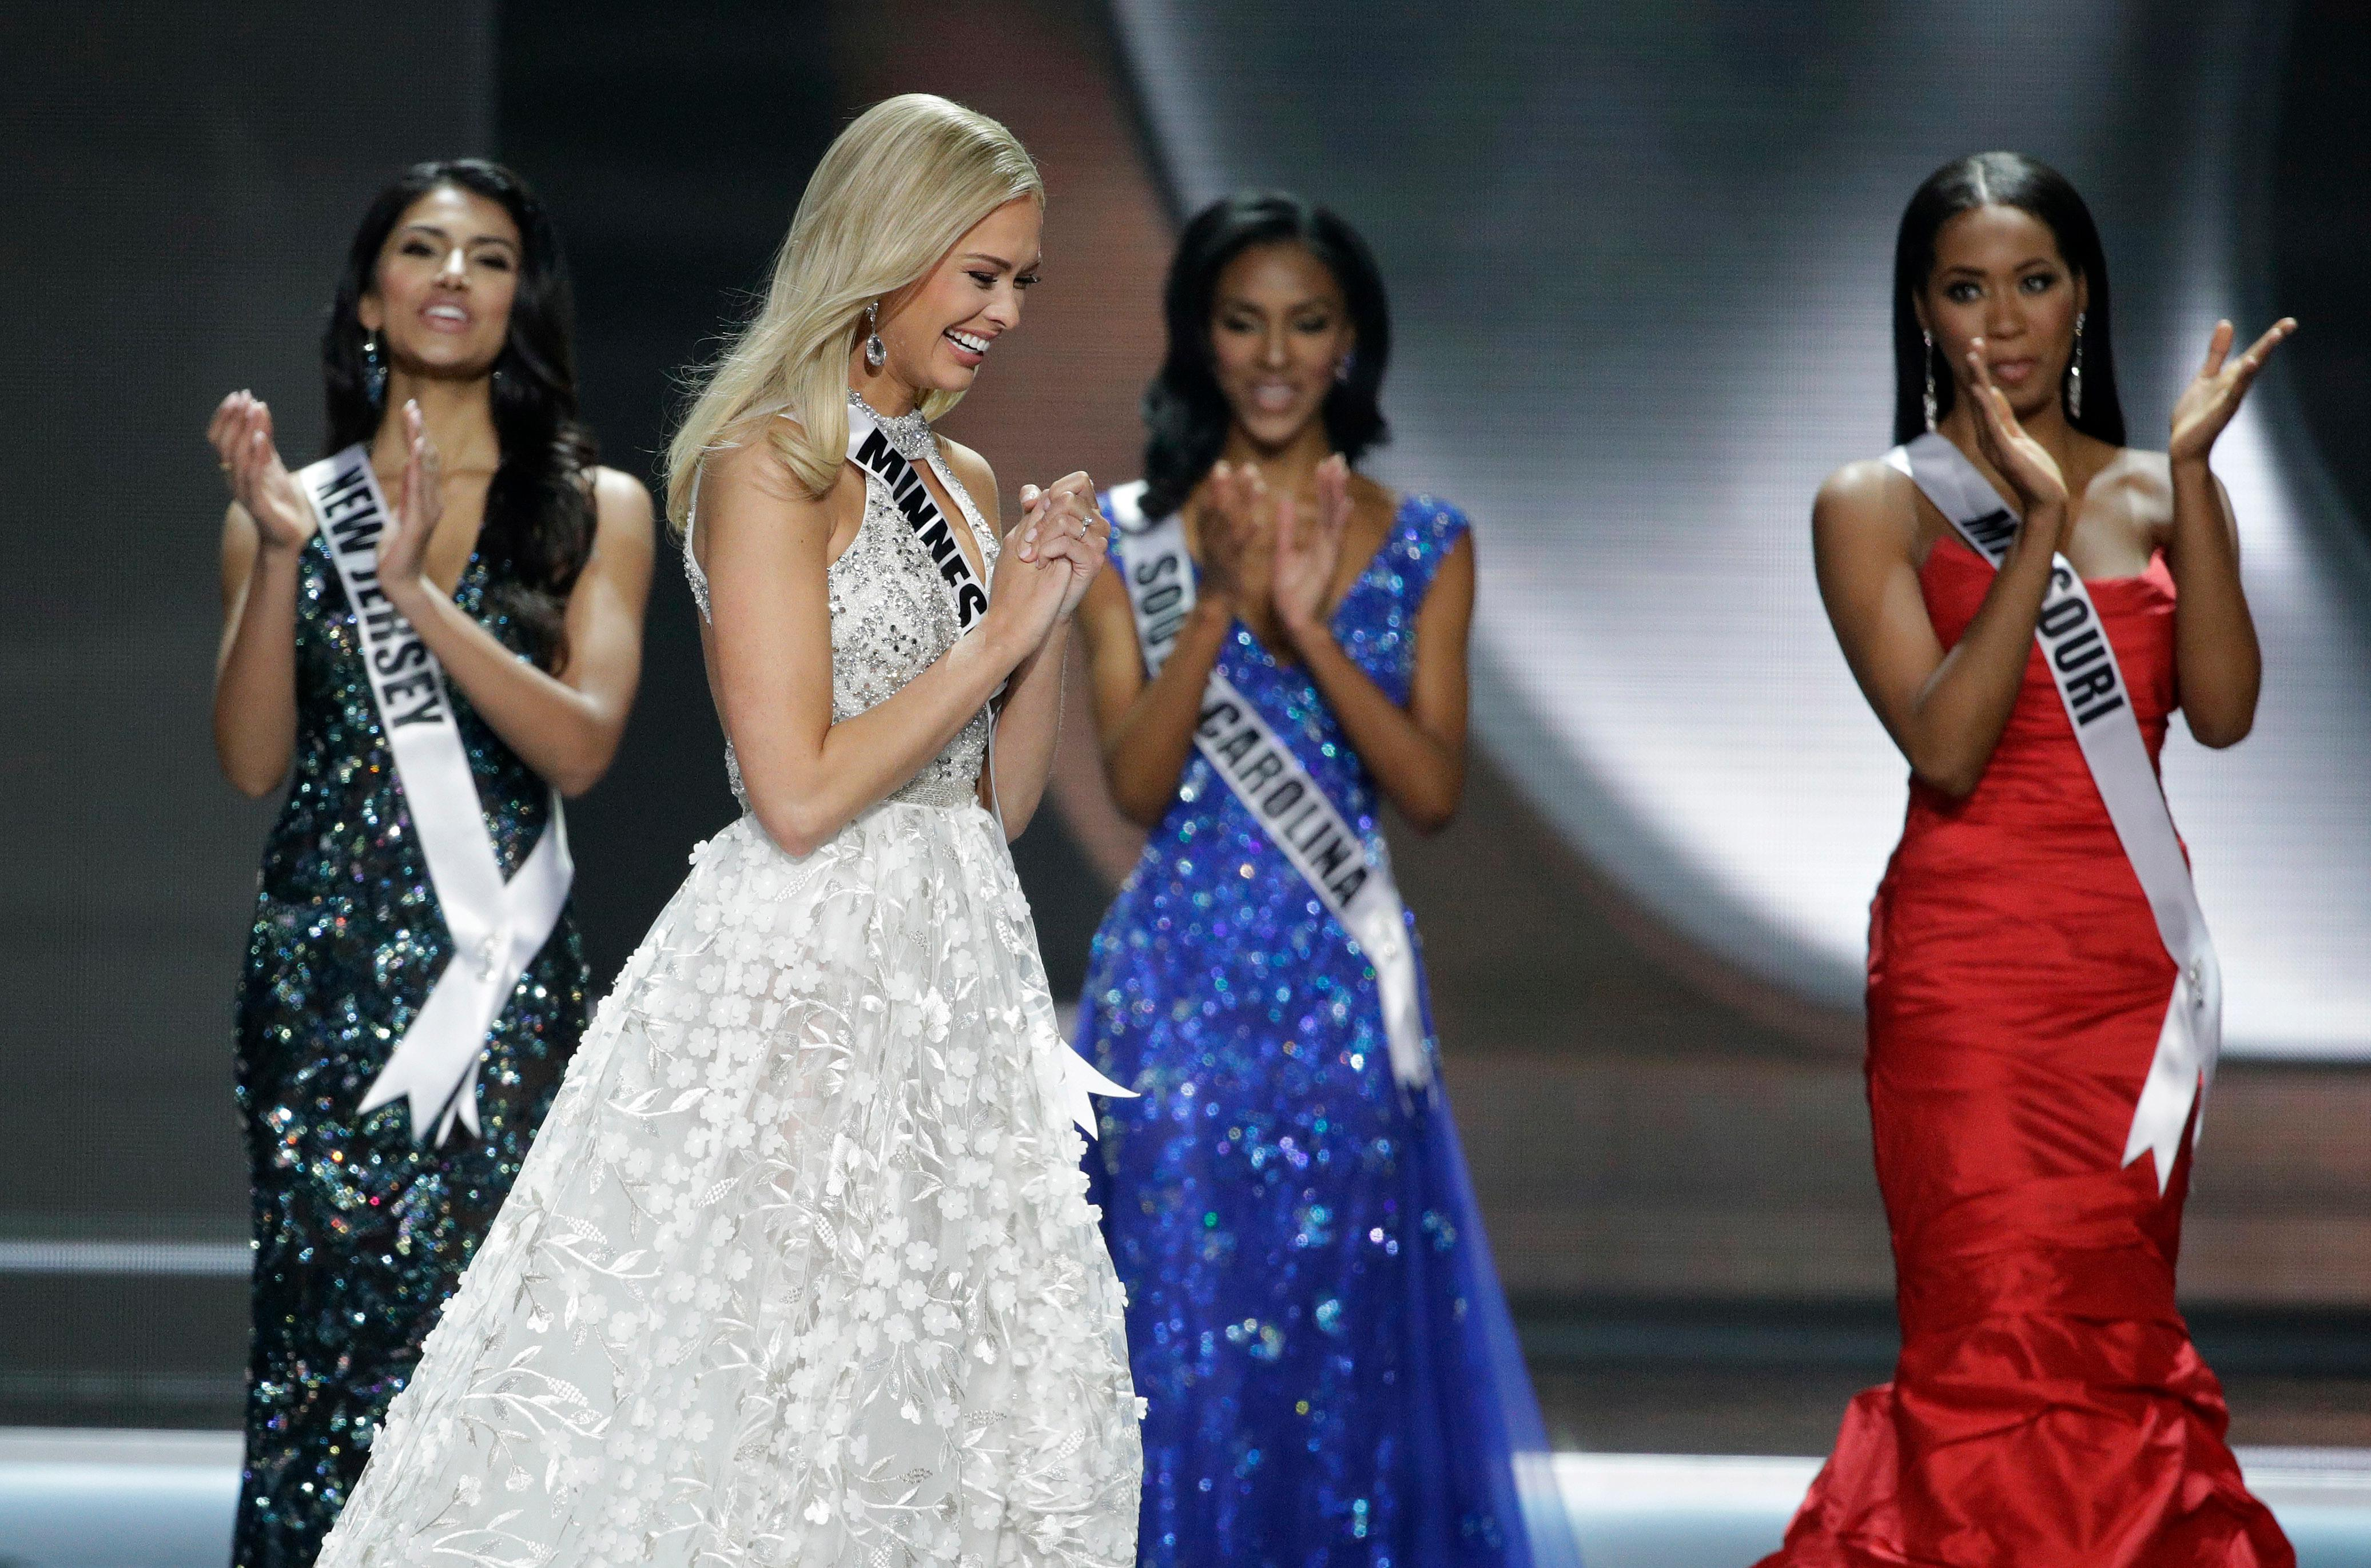 Miss Minnesota USA Meridith Gould celebrates making the top five during the Miss USA contest Sunday, May 14, 2017, in Las Vegas. (AP Photo/John Locher)